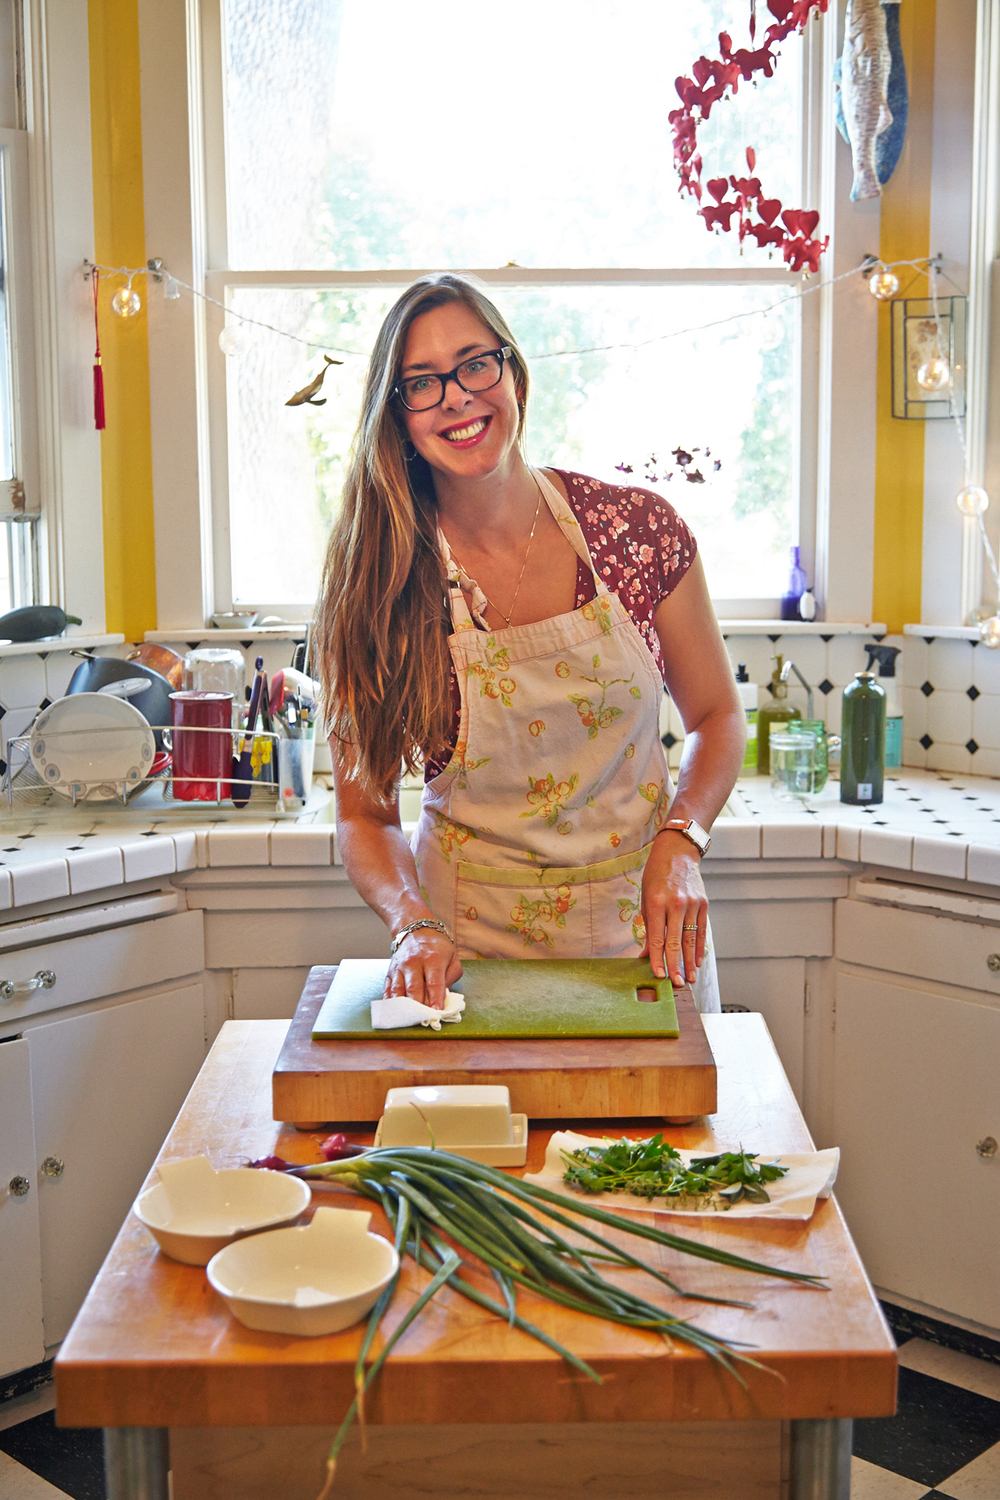 Abi at ease in her adorable farmhouse kitchen at Annadel Estate !